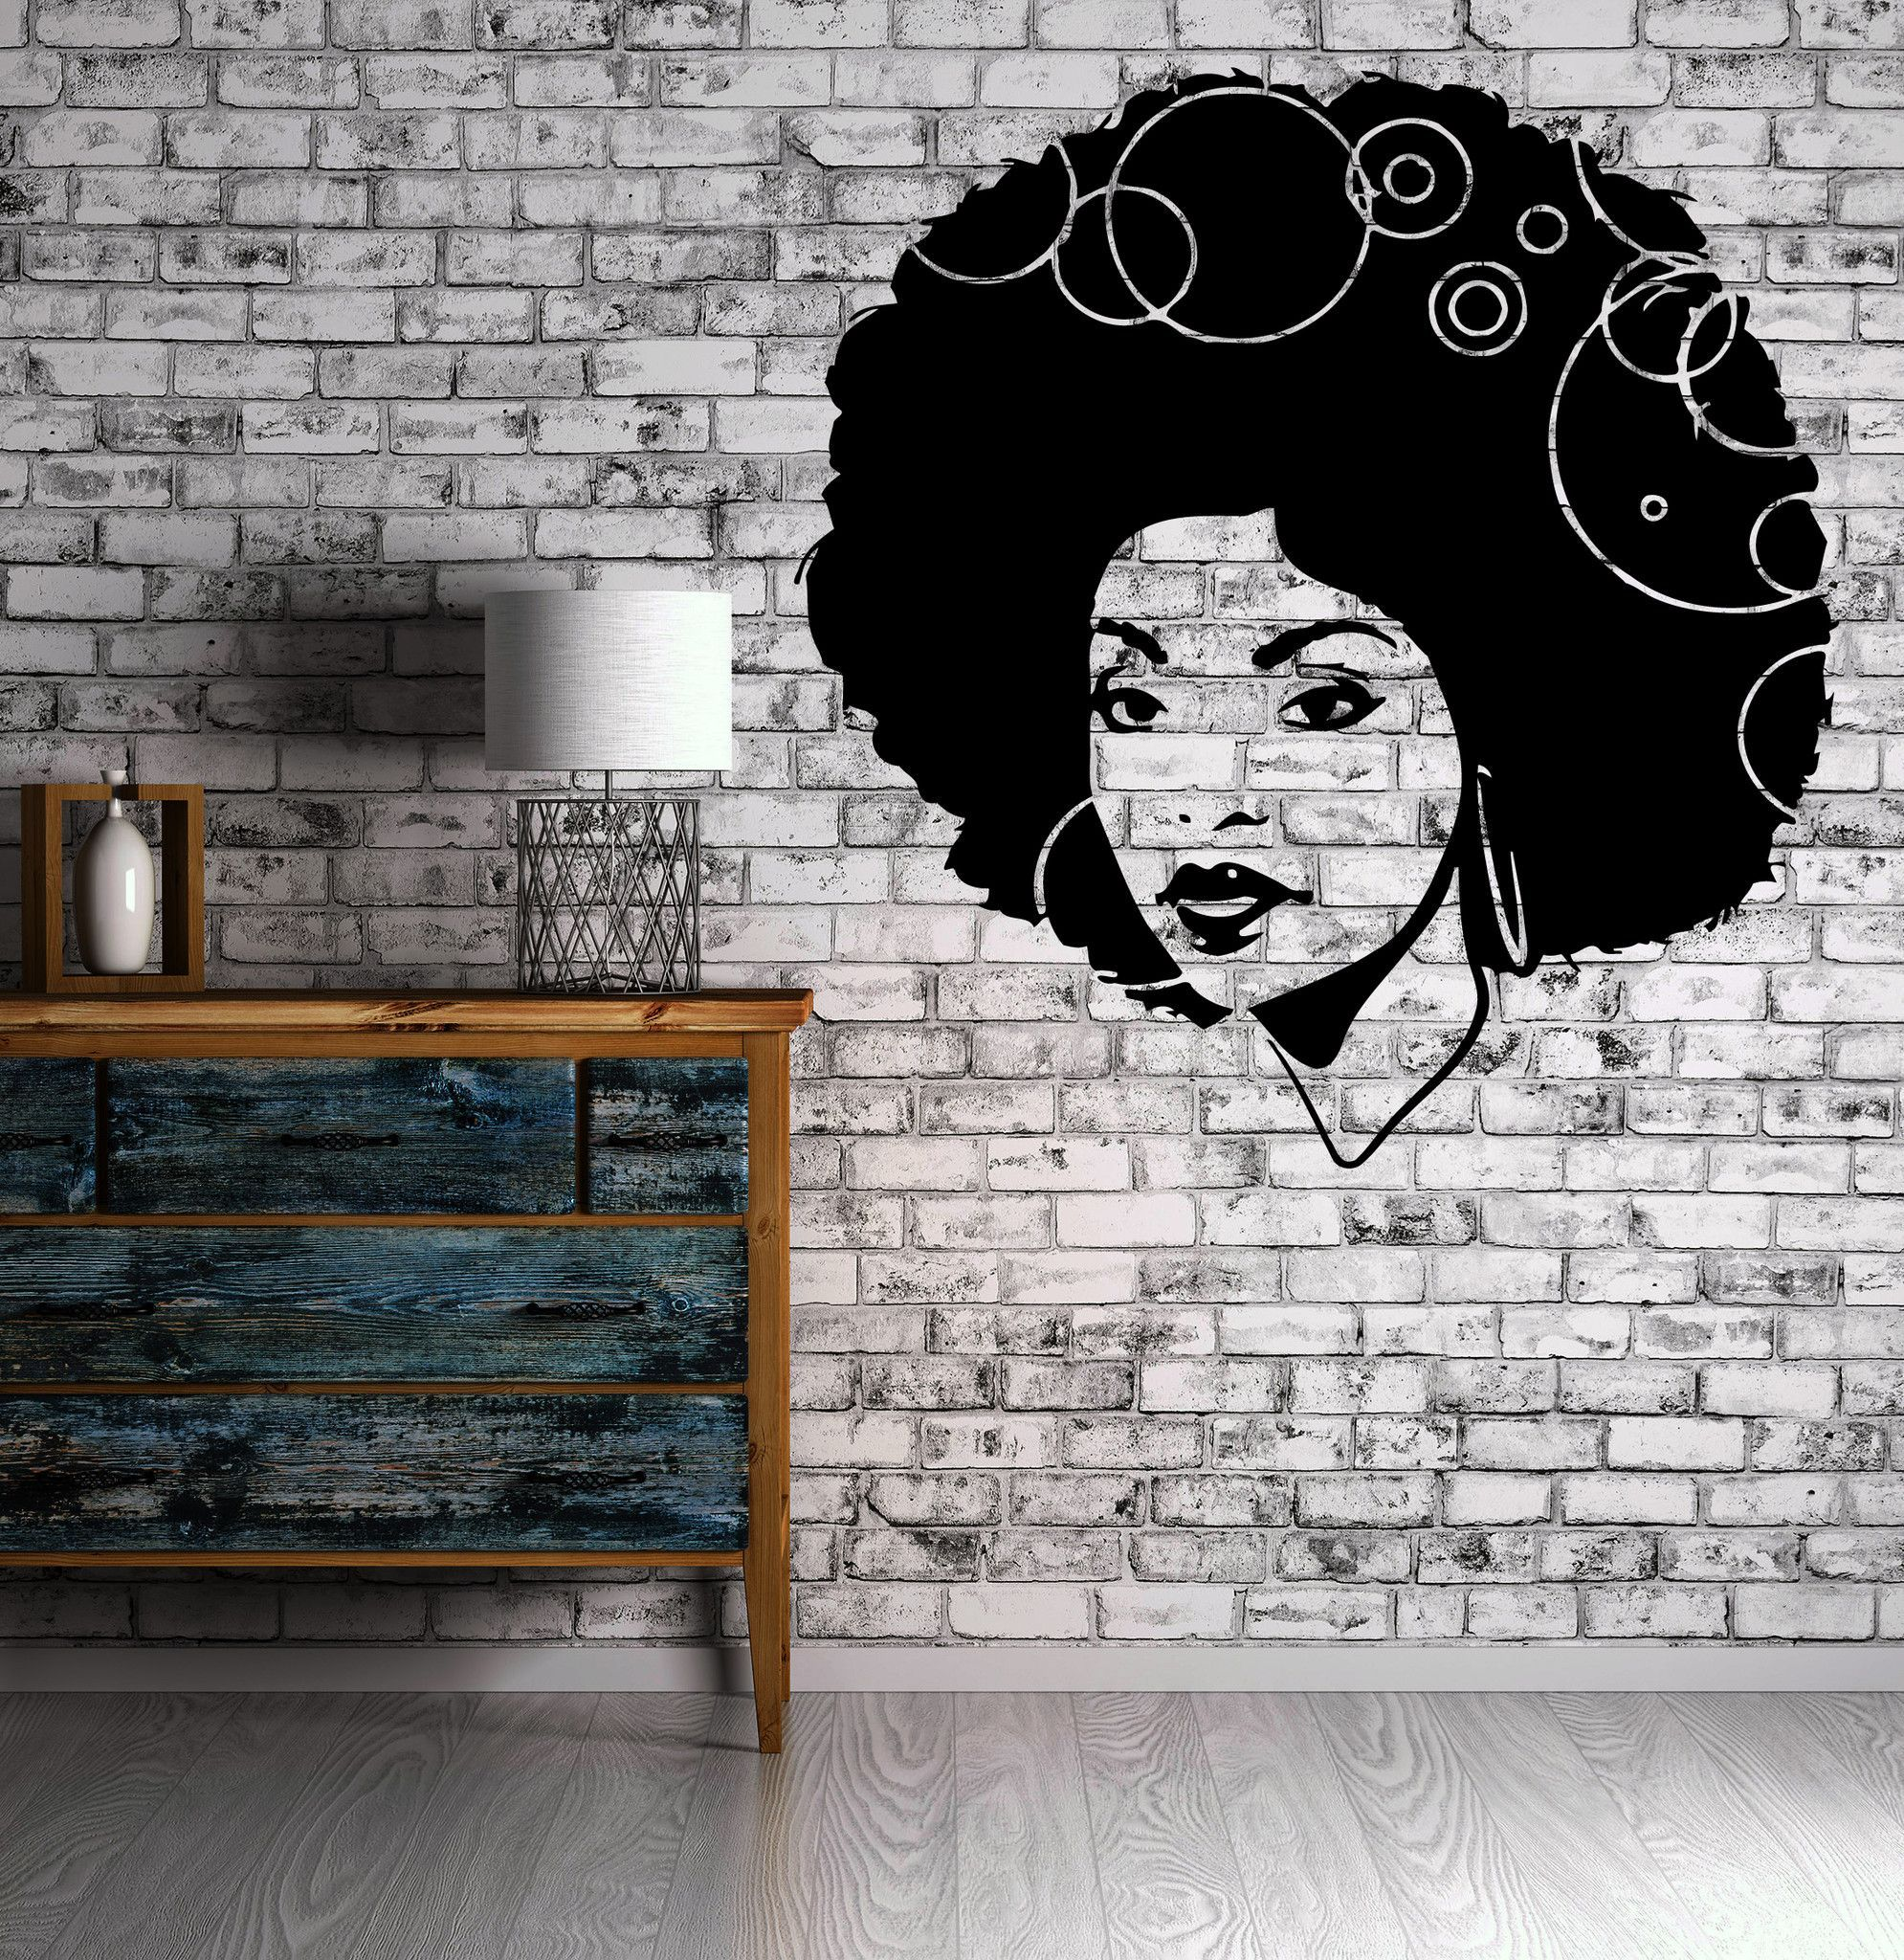 Woman Girl Erotic Wall Decal Vinyl Sticker Wall Decor By CozyDecal - Wall stickershuhushopxaudrey hepburn beautiful eyes removable